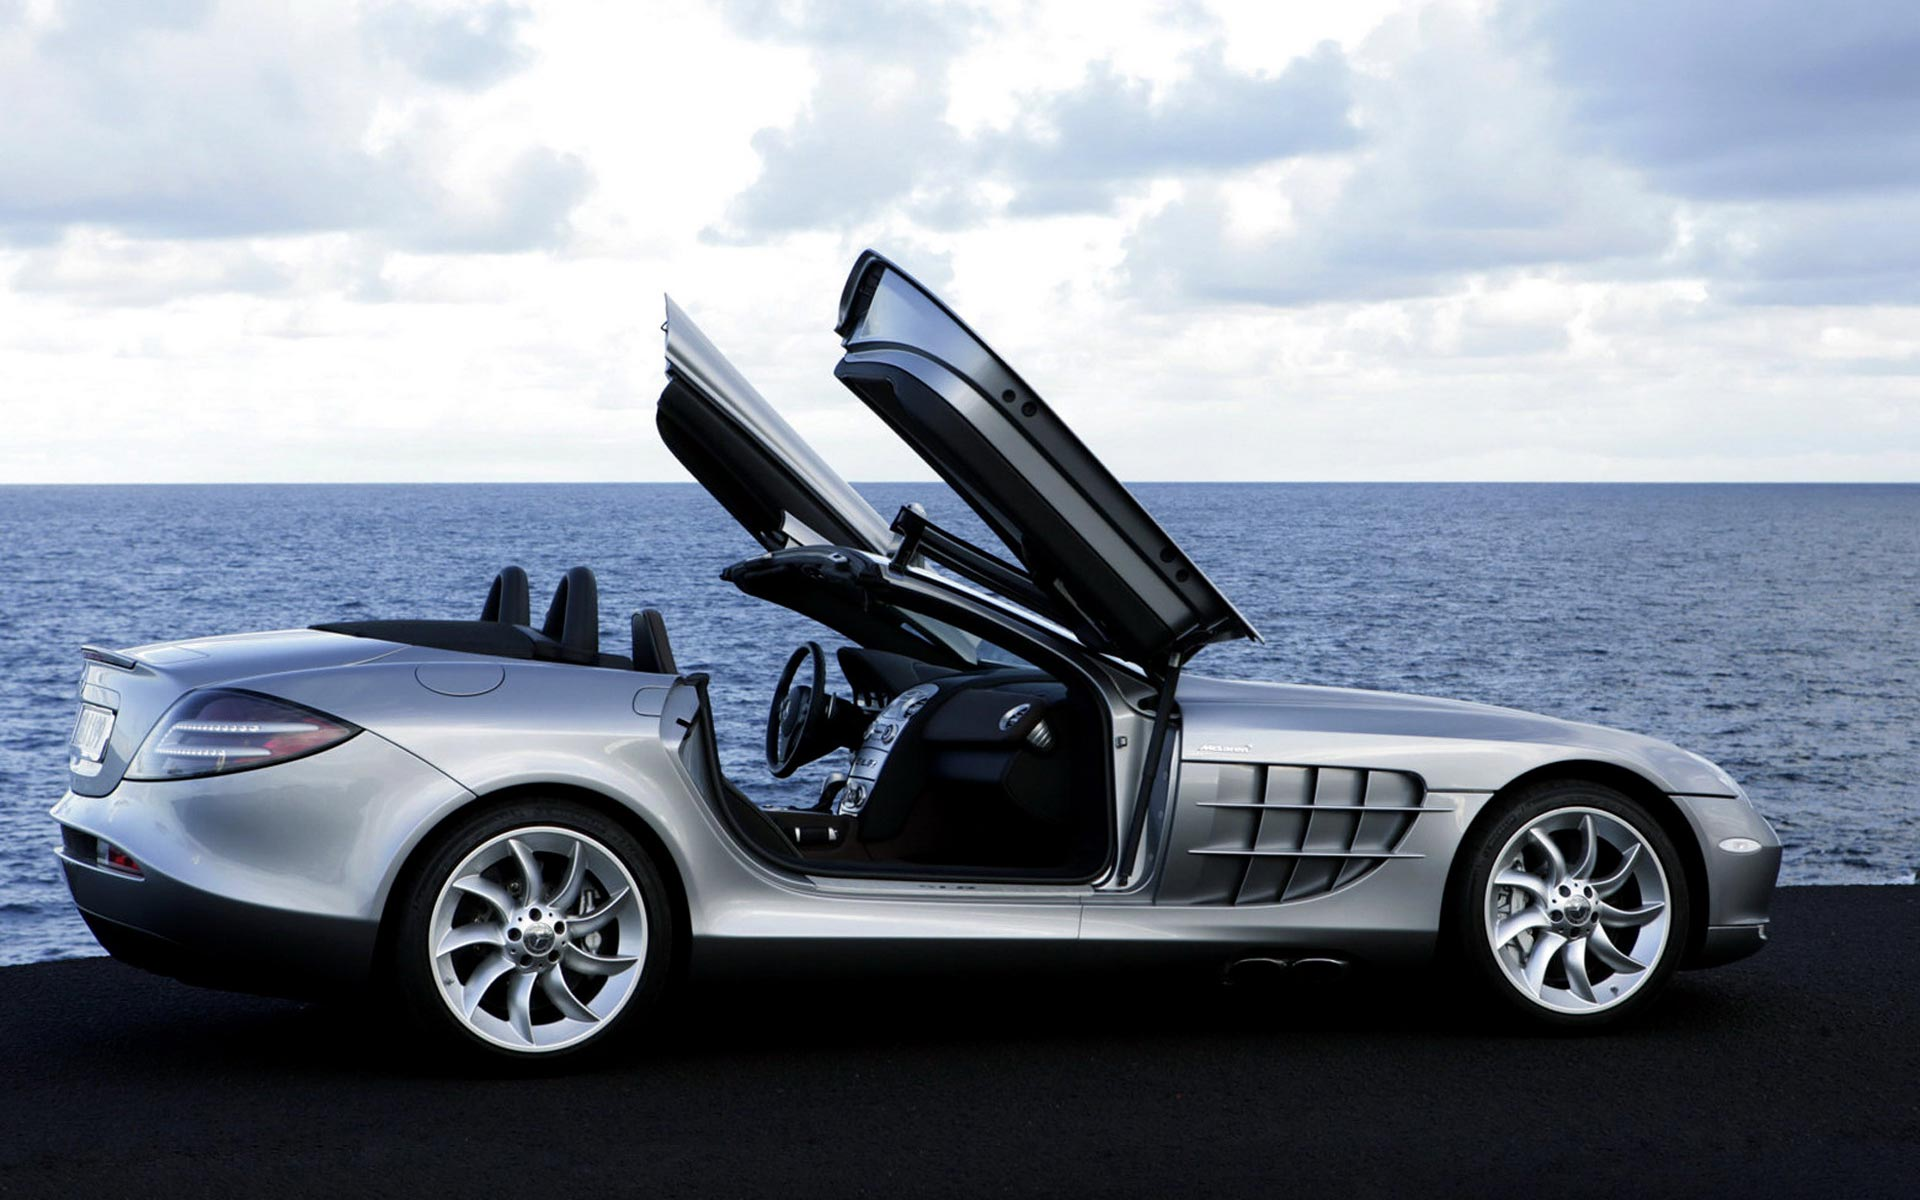 Mercedes Benz SLR McLaren Side Open